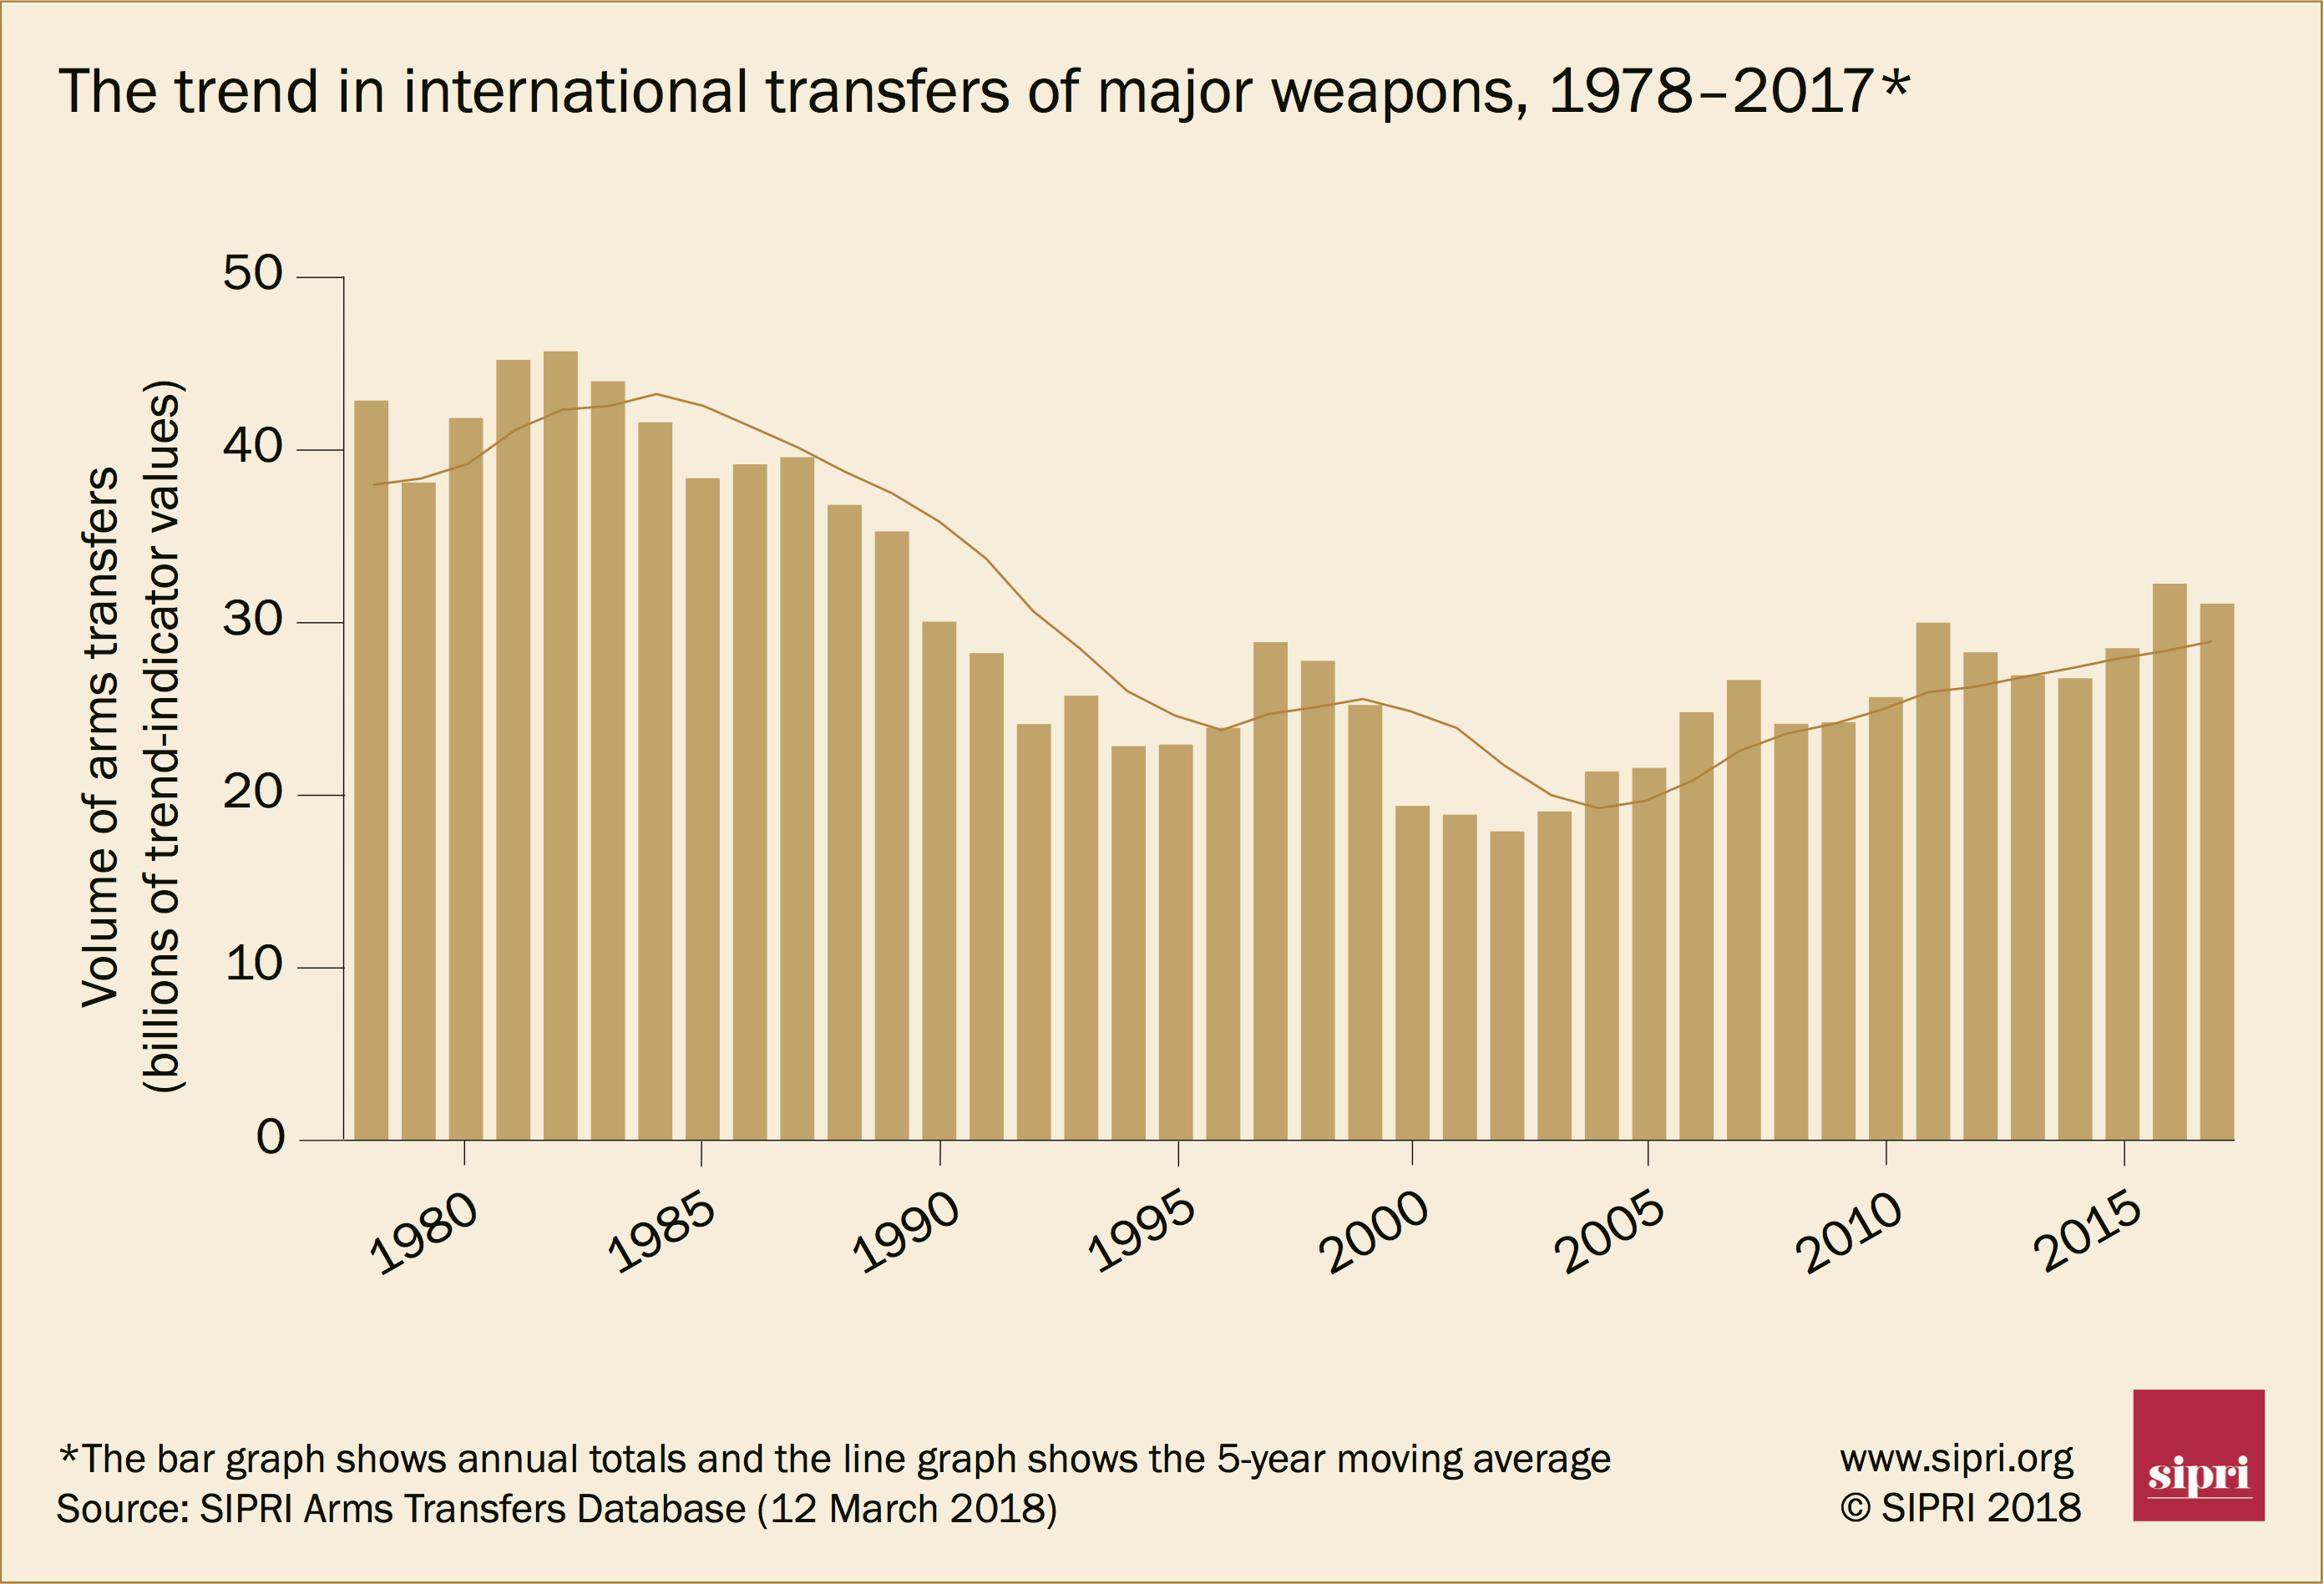 The trend in international transfers of major weapons